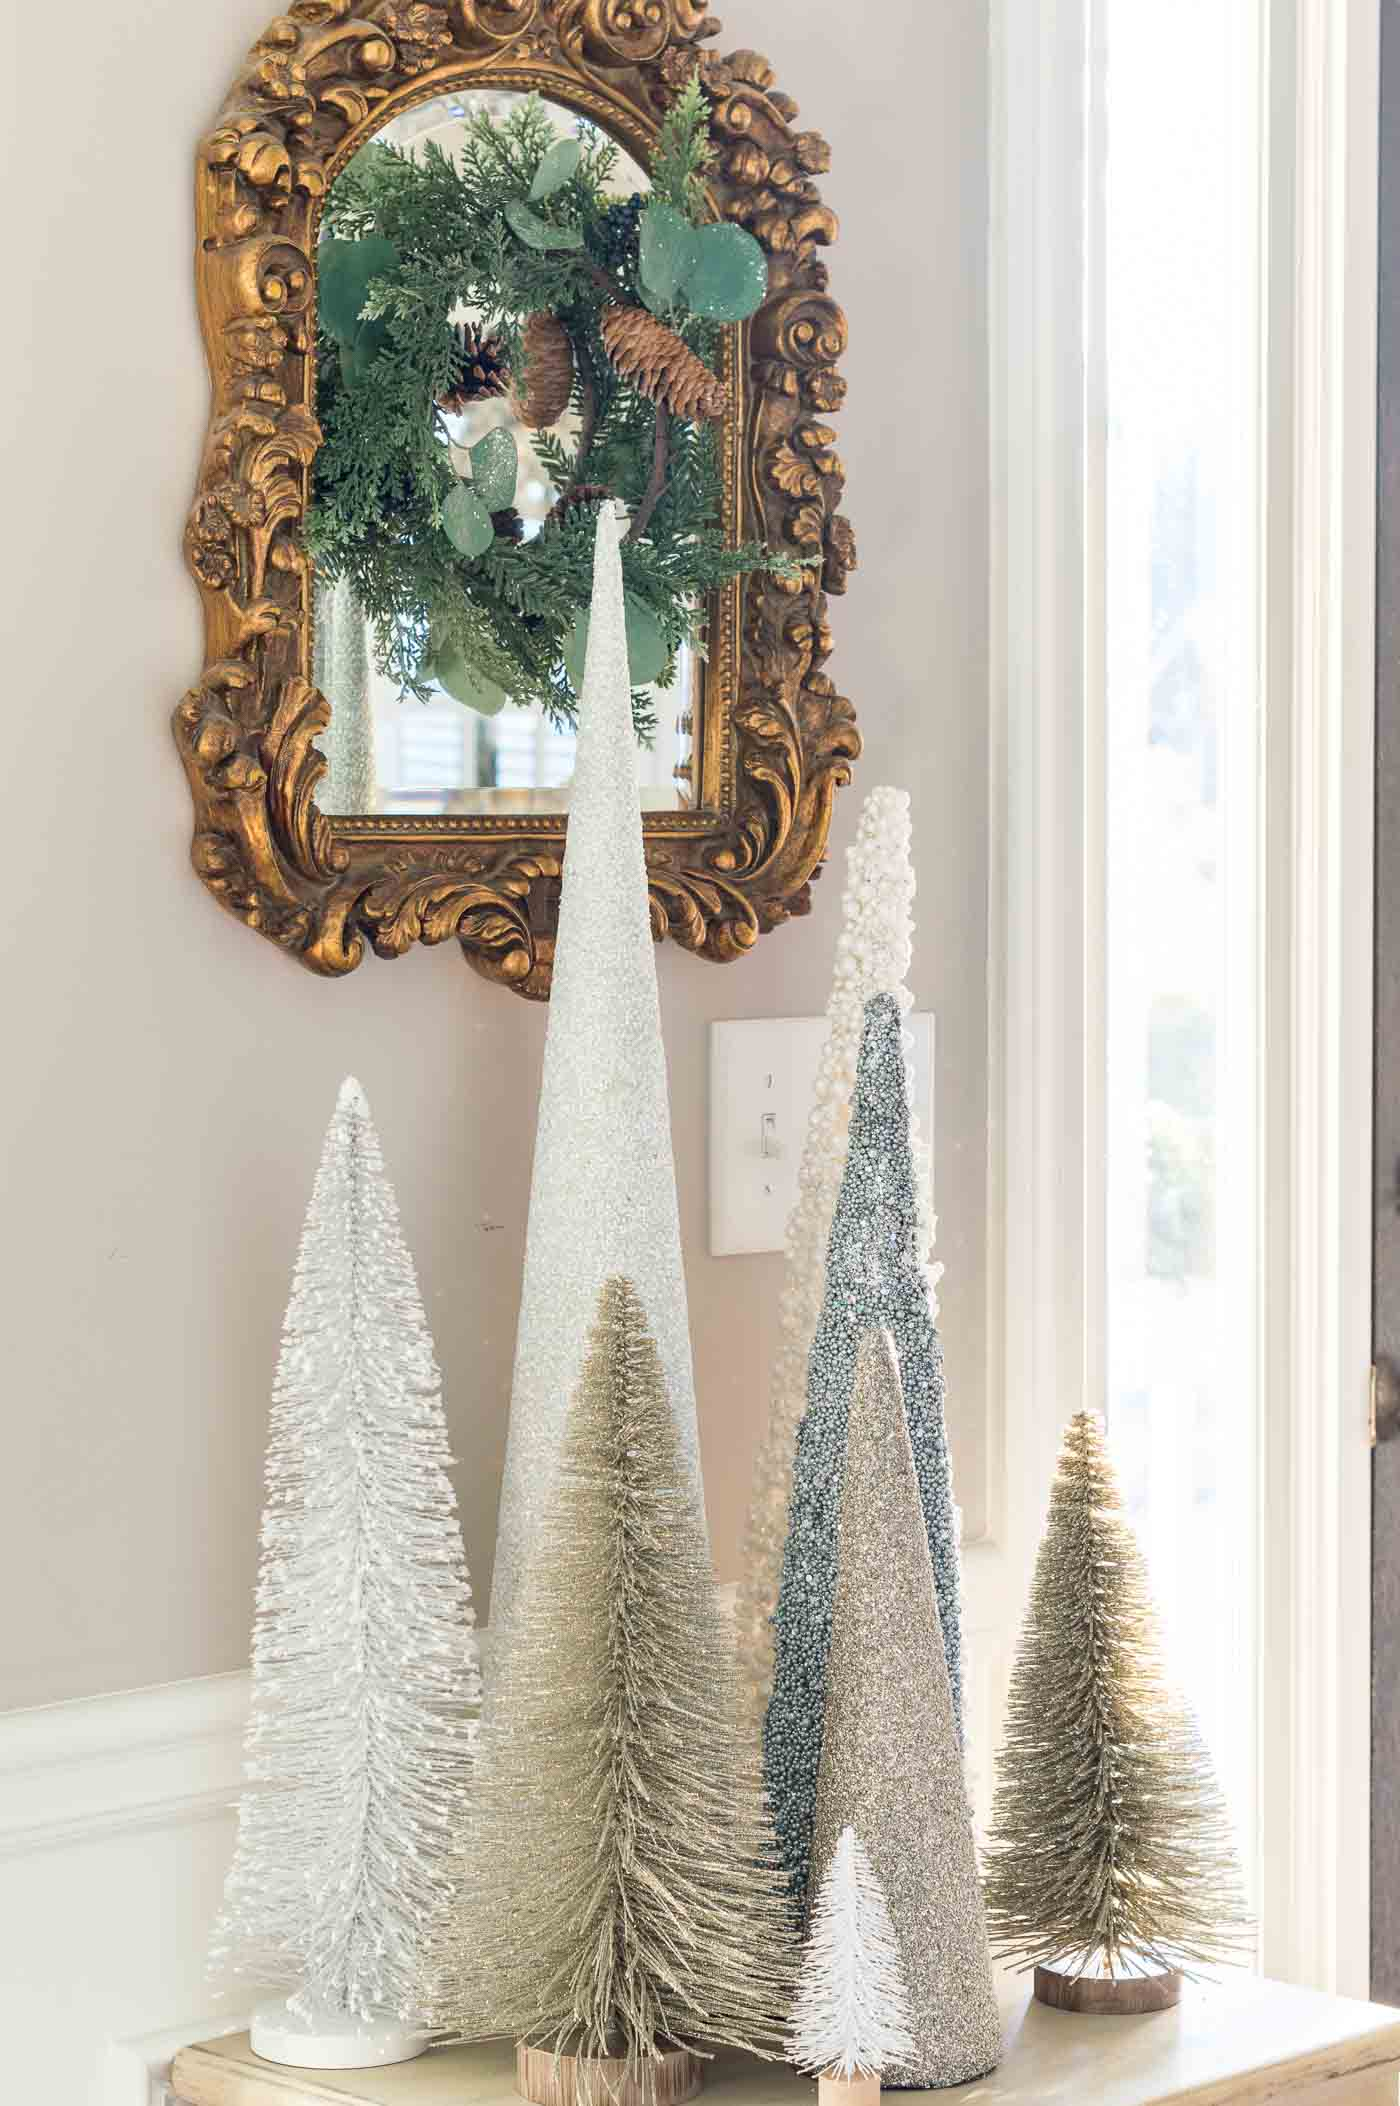 Simple Christmas decoration ideas for the foyer entry